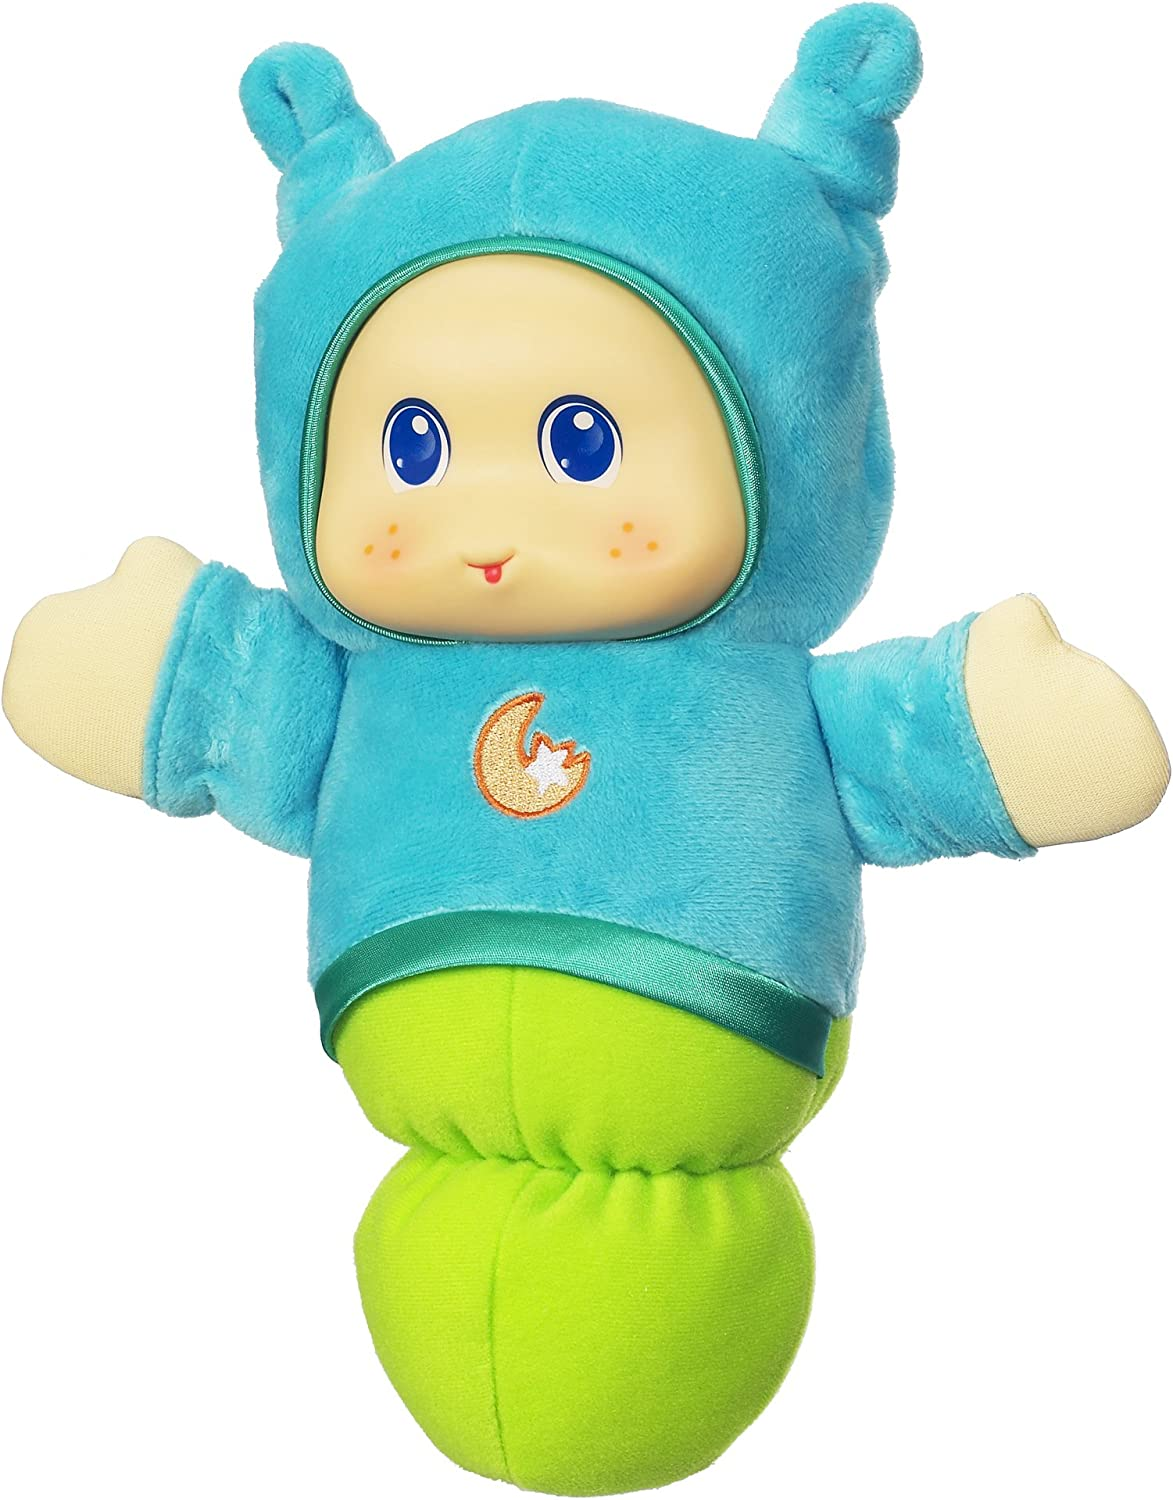 Playskool Lullaby Gloworm Toy with 6 lullaby tunes, Blue (Amazon Exclusive)